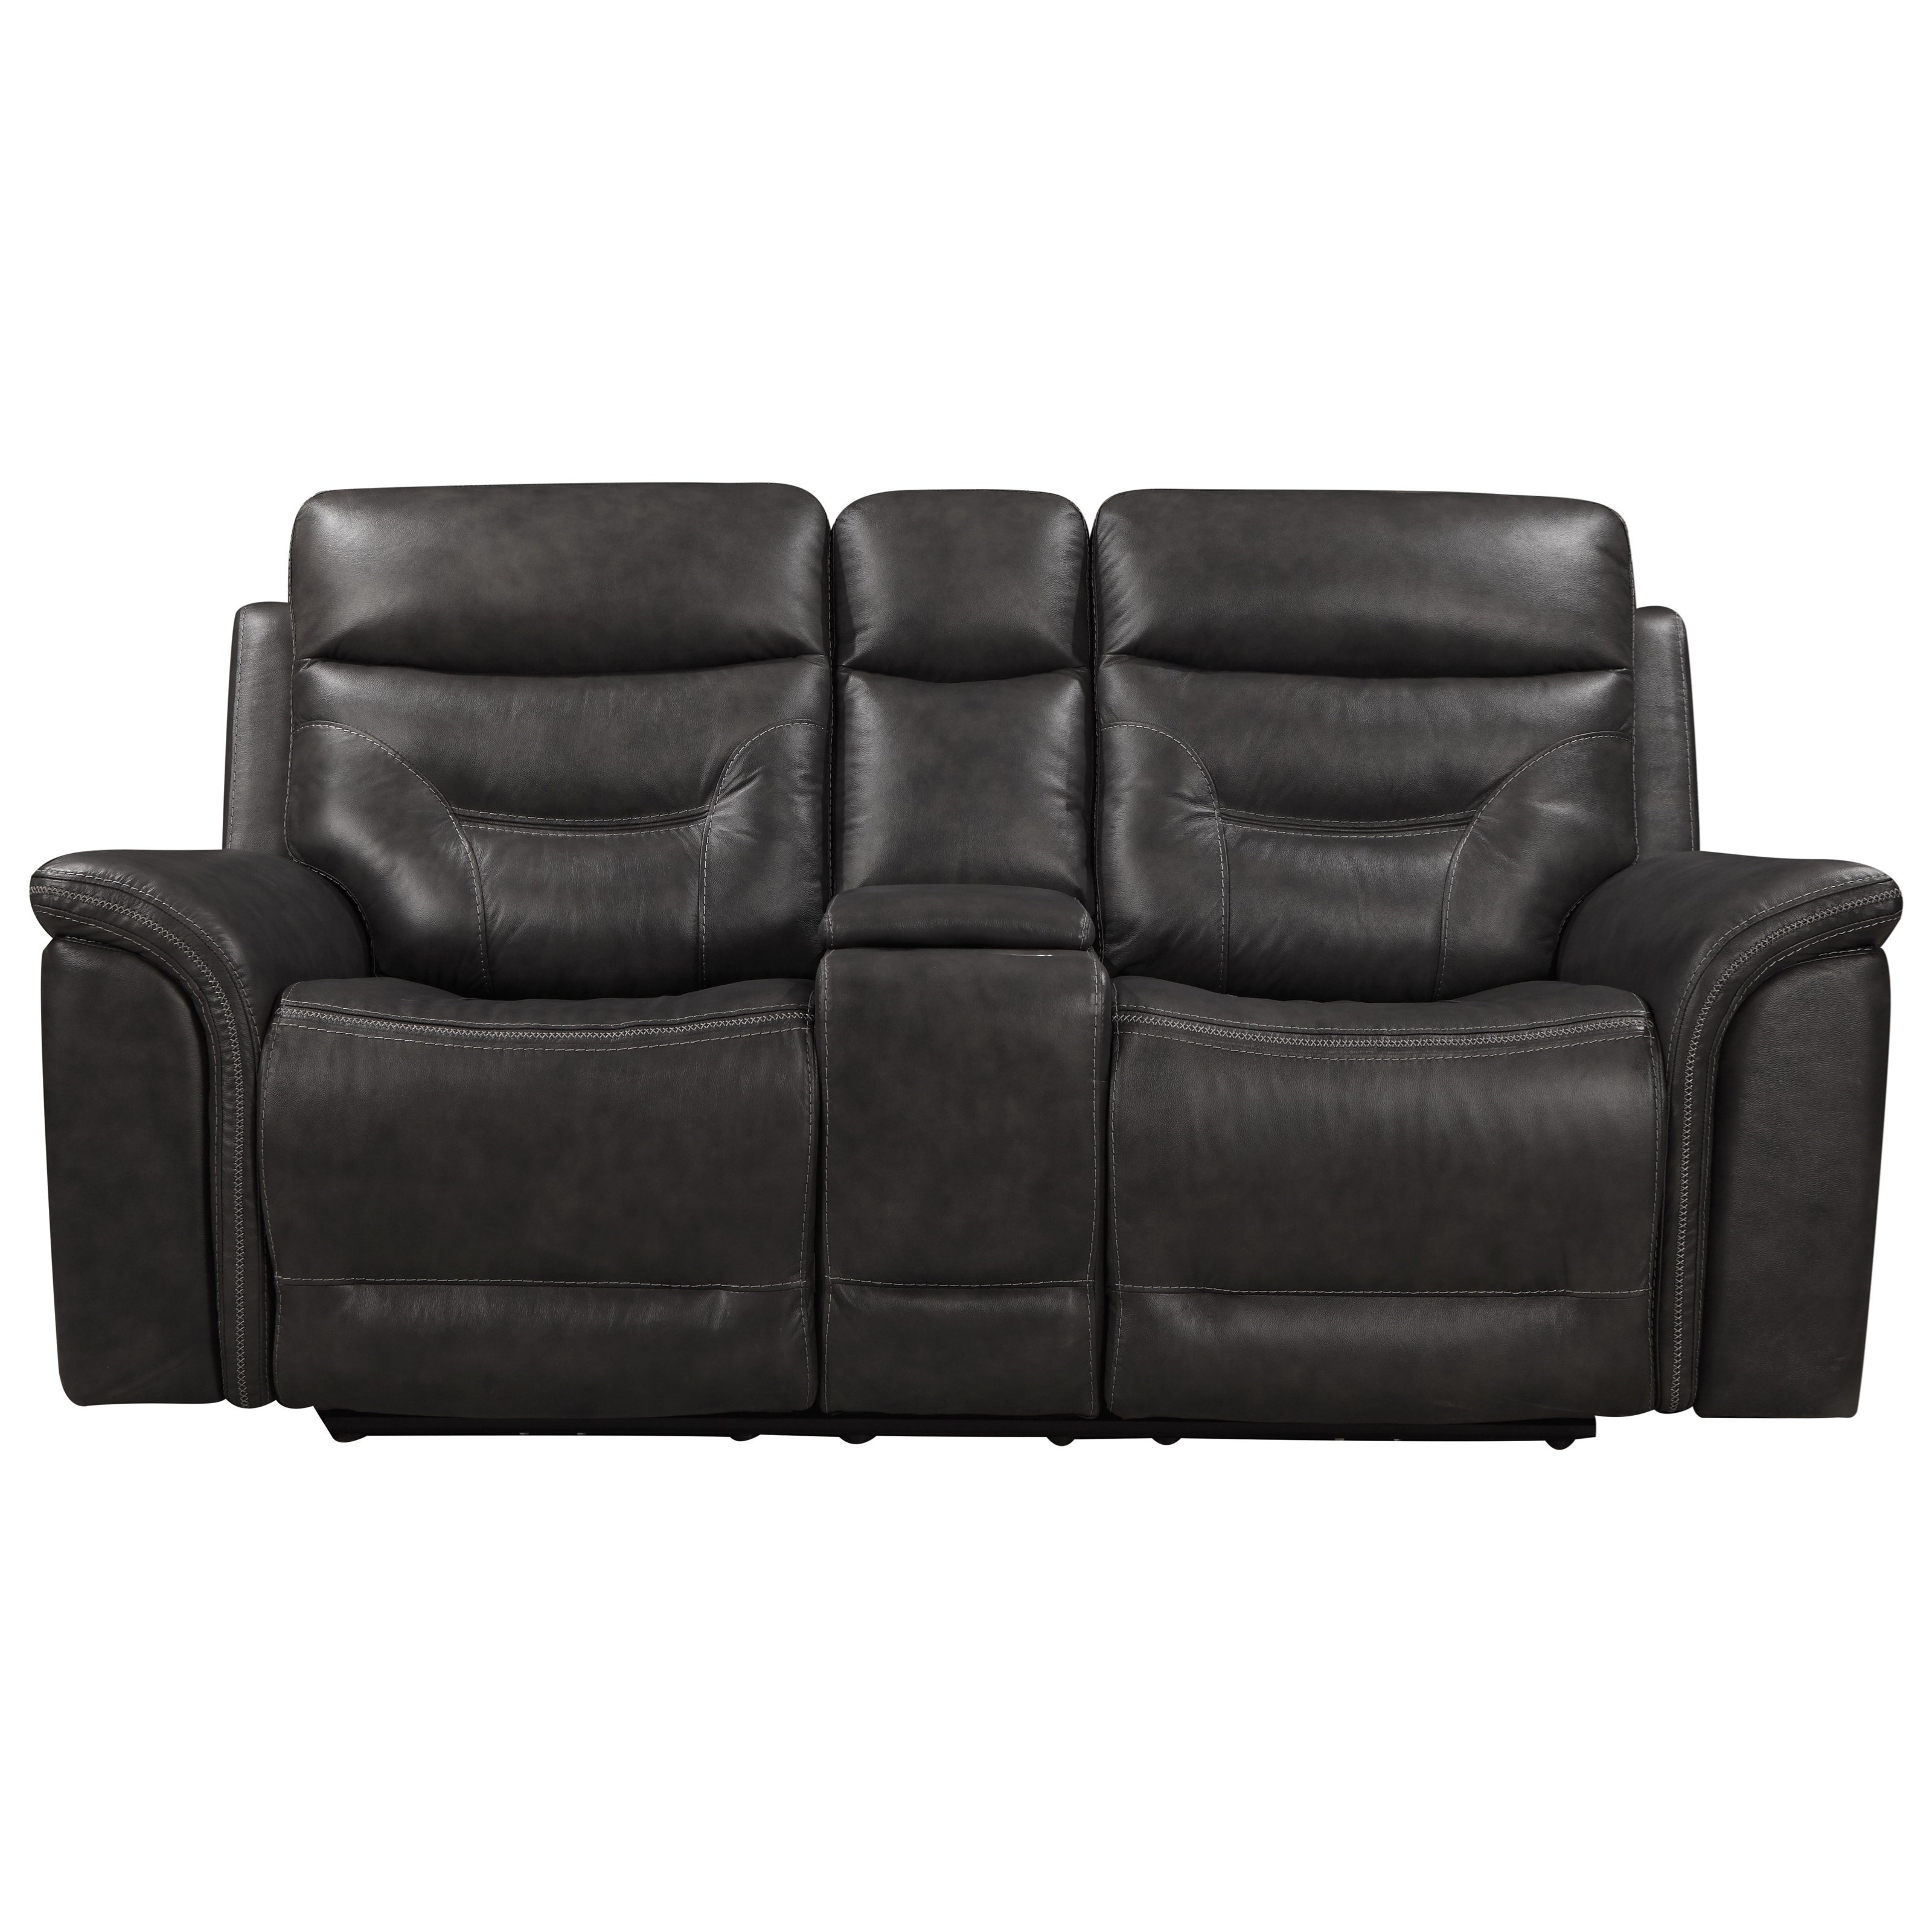 Bullard Power Reclining Console Loveseat by Leather Italia USA at Darvin Furniture